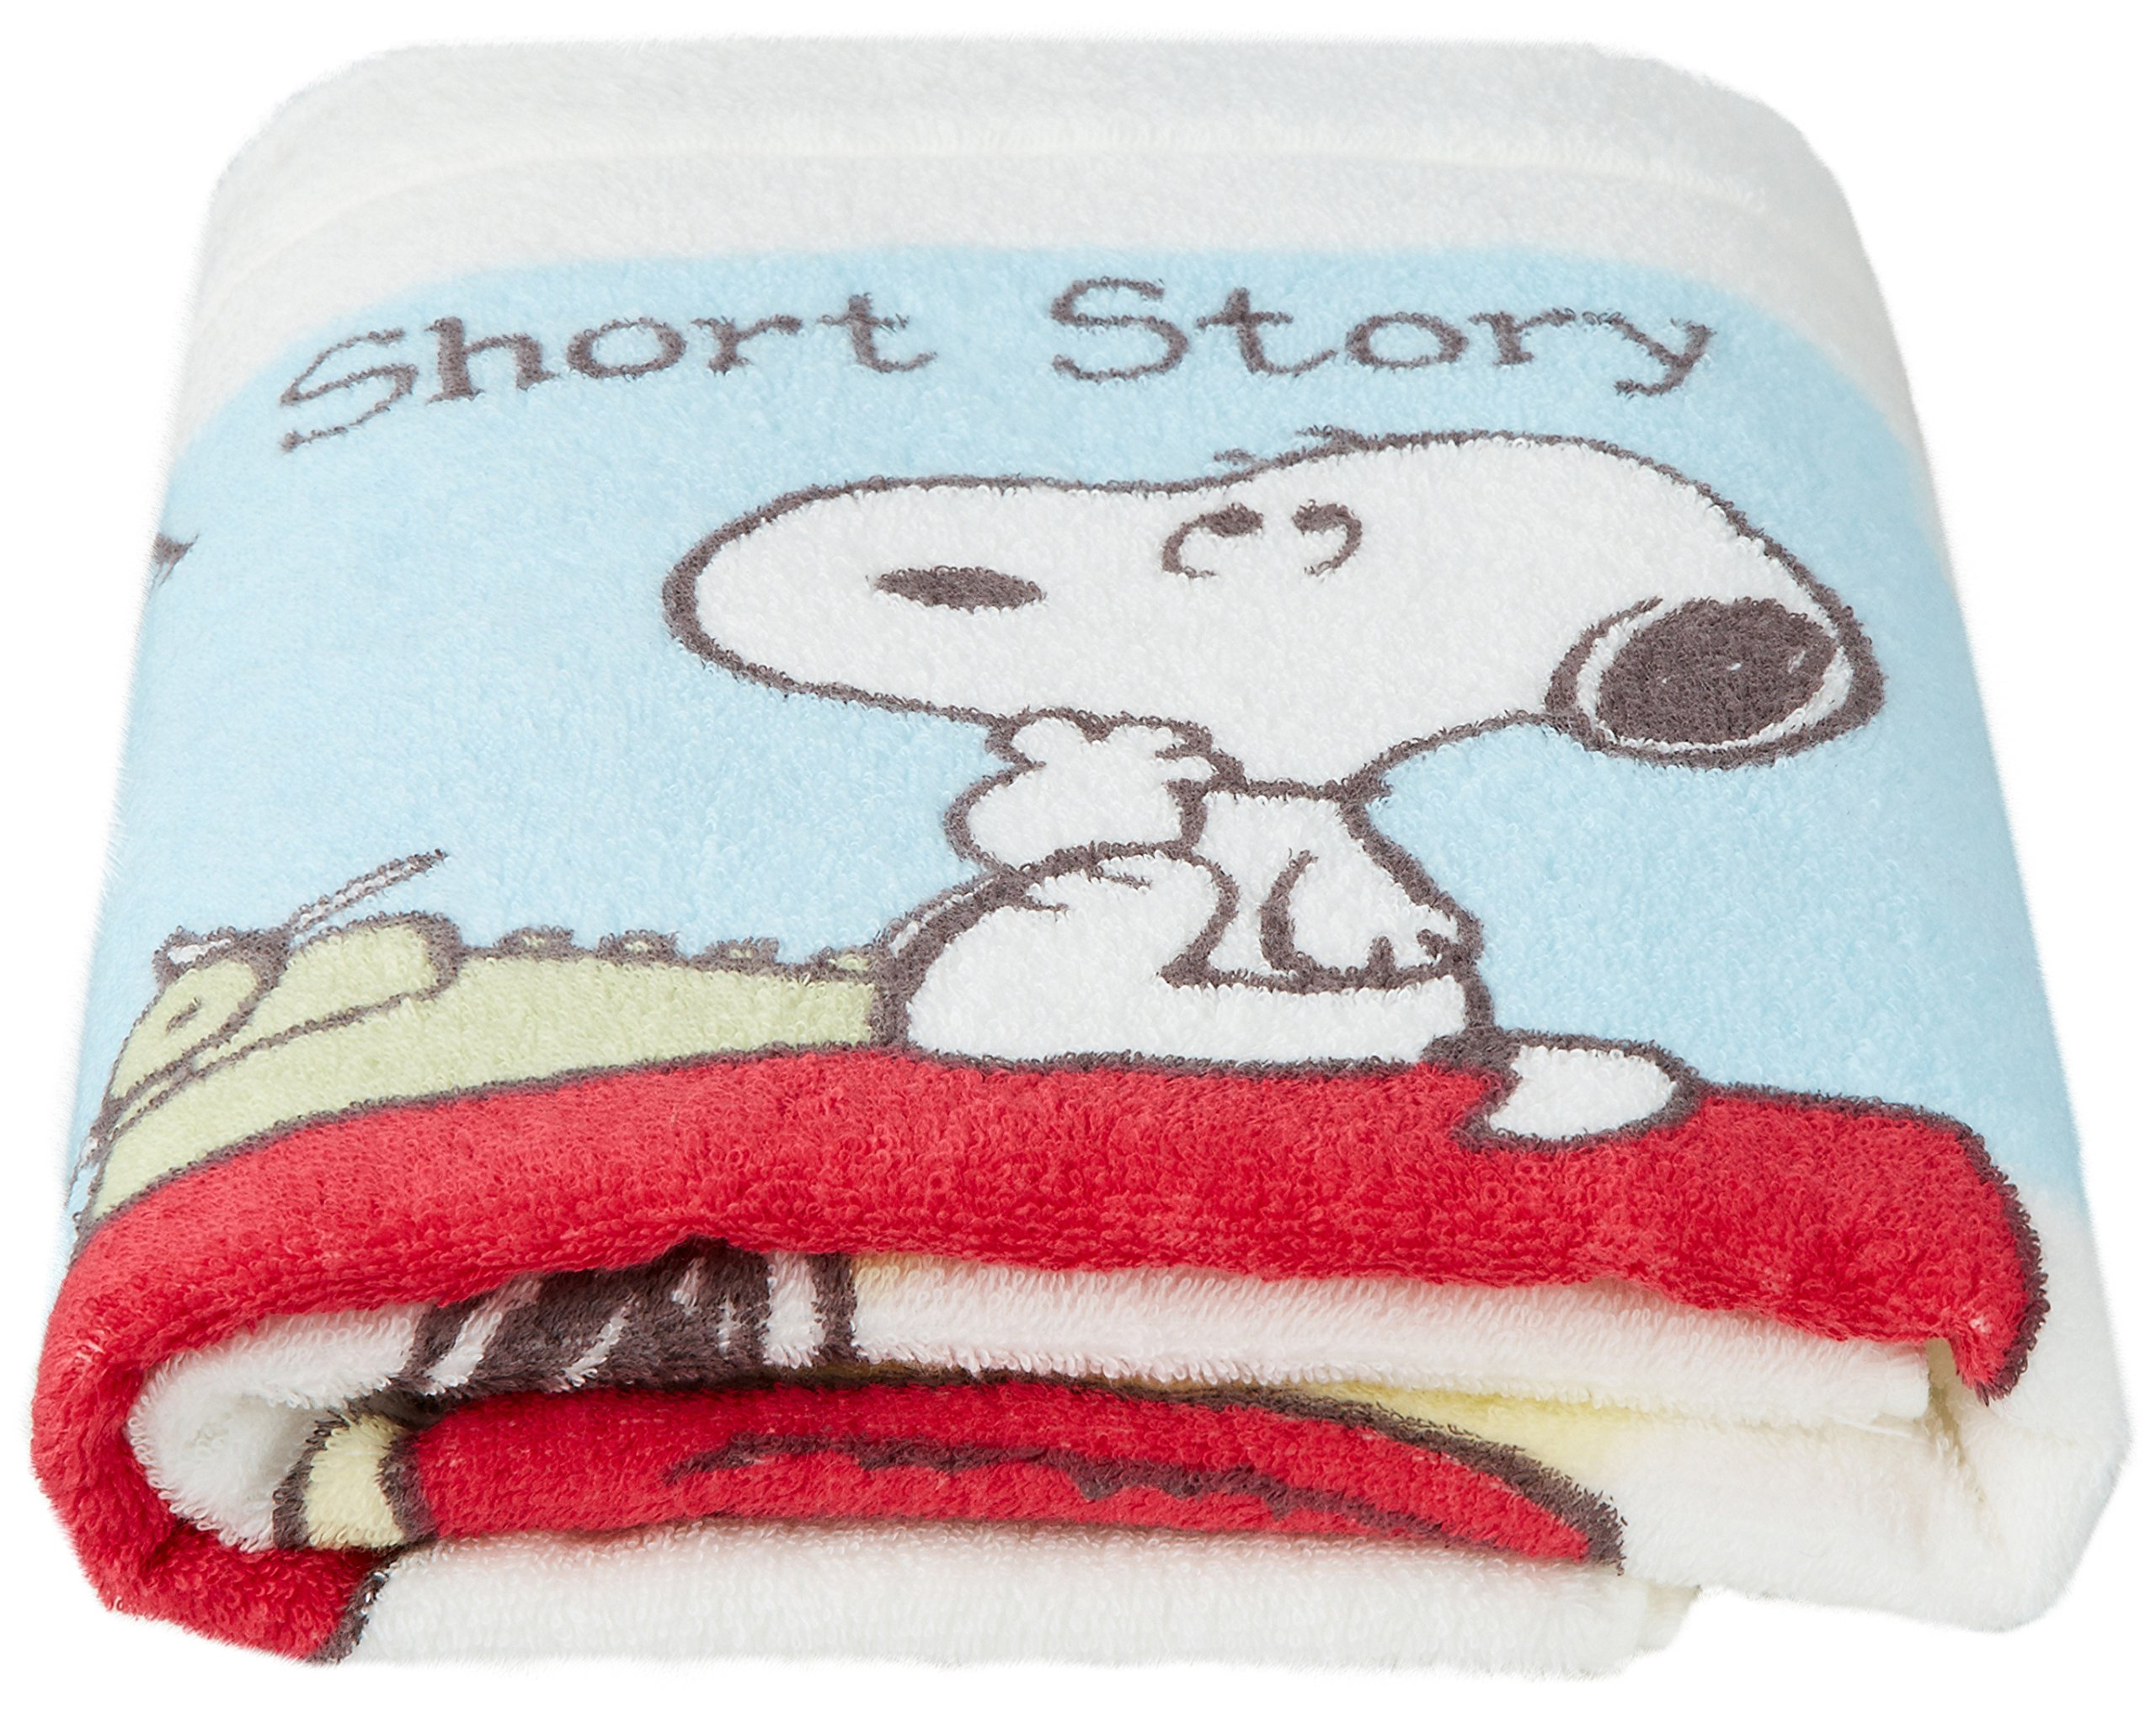 Nishikawa Living Snoopy hollow fiber used towel soft pattern White by Nishikawa living